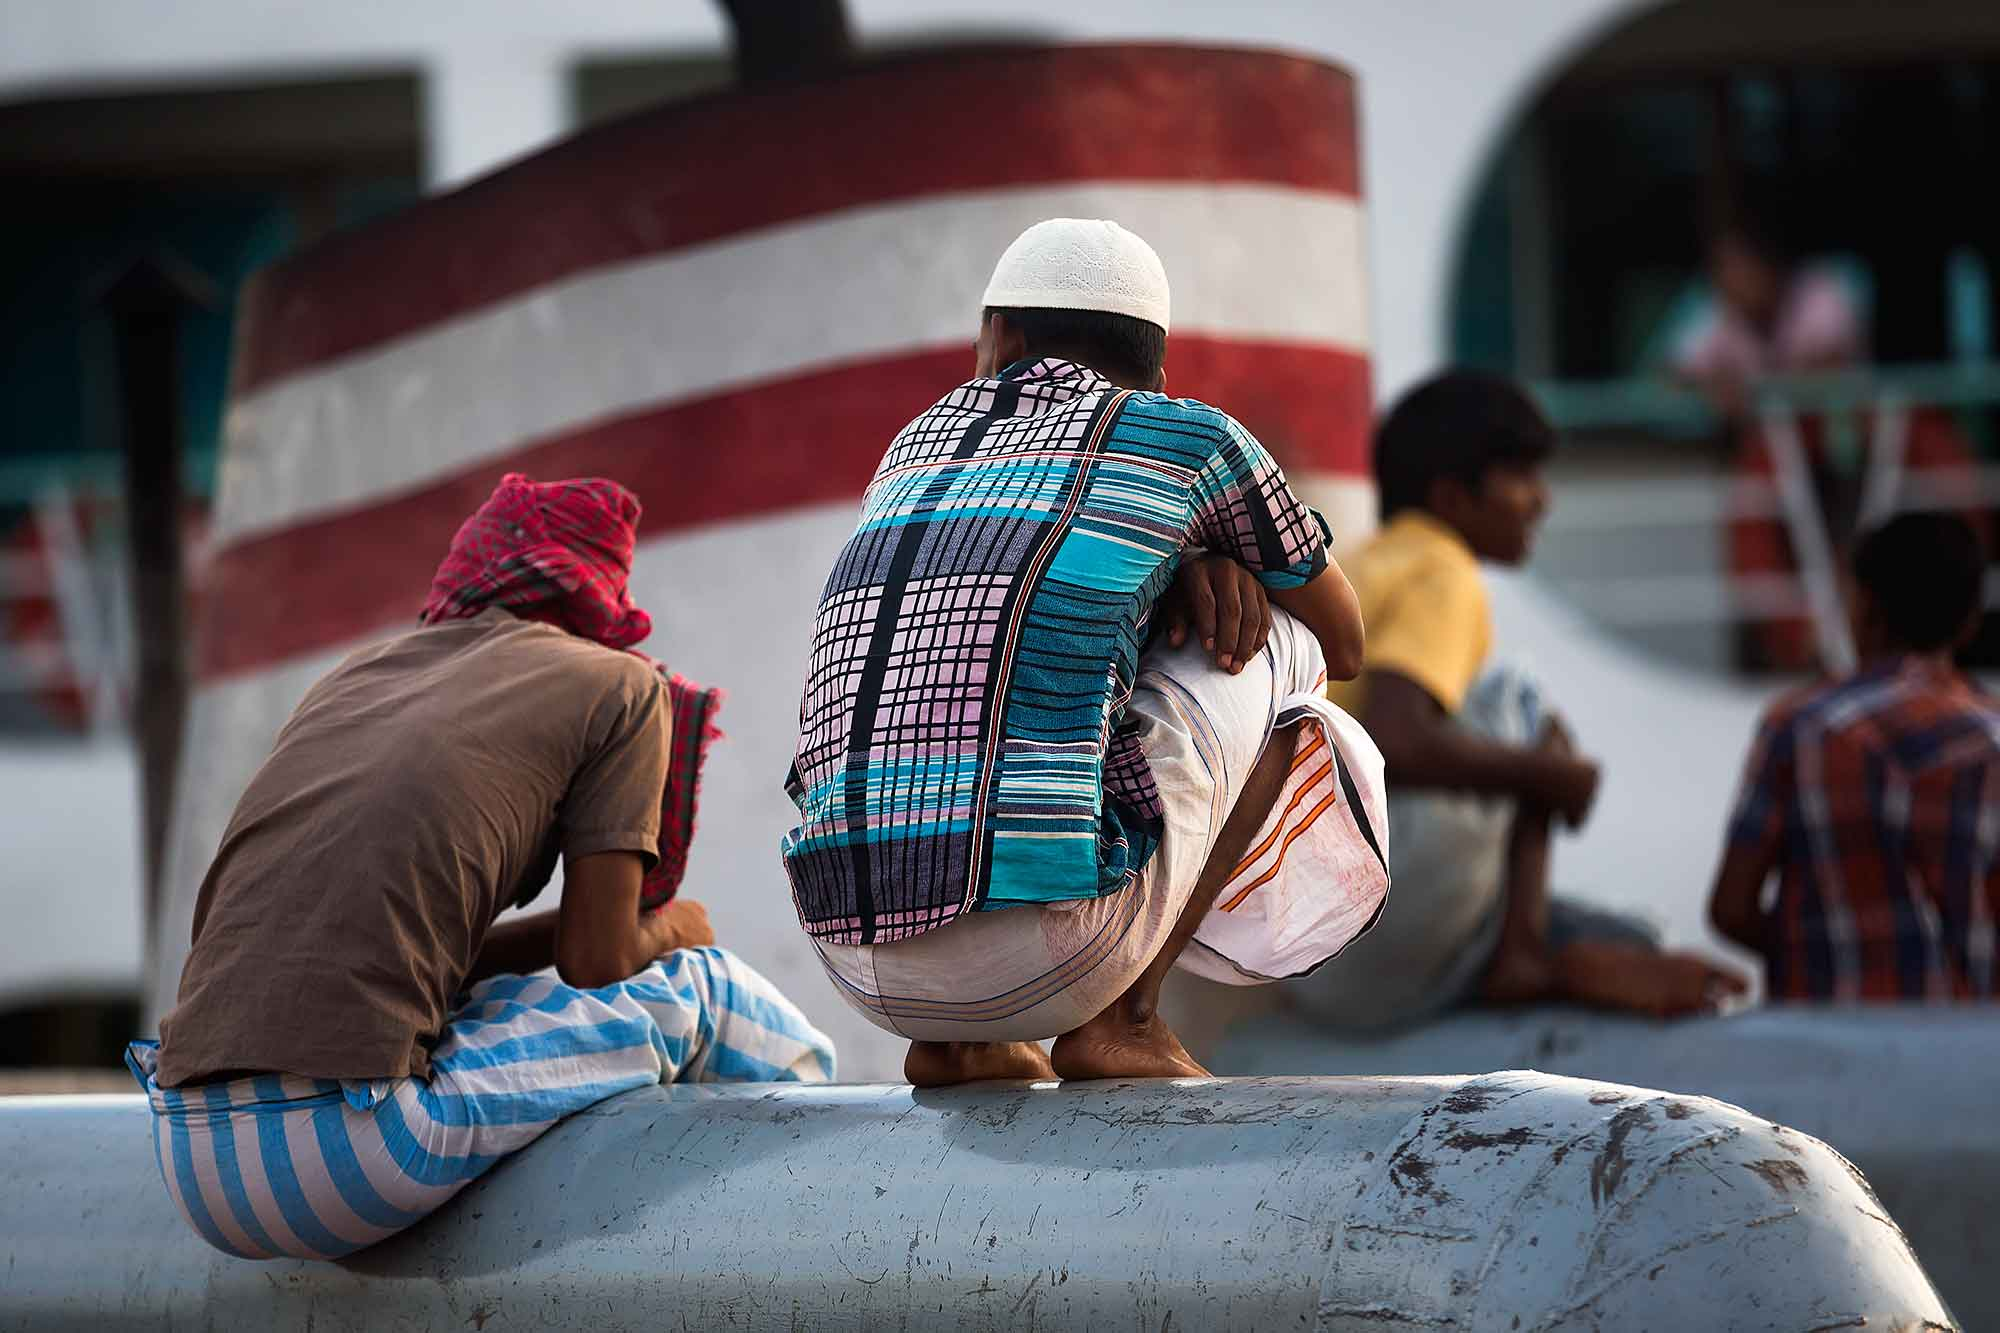 Waiting for the launch to depart from Sadarghat port in Dhaka, Bangladesh. © Ulli Maier & Nisa Maier